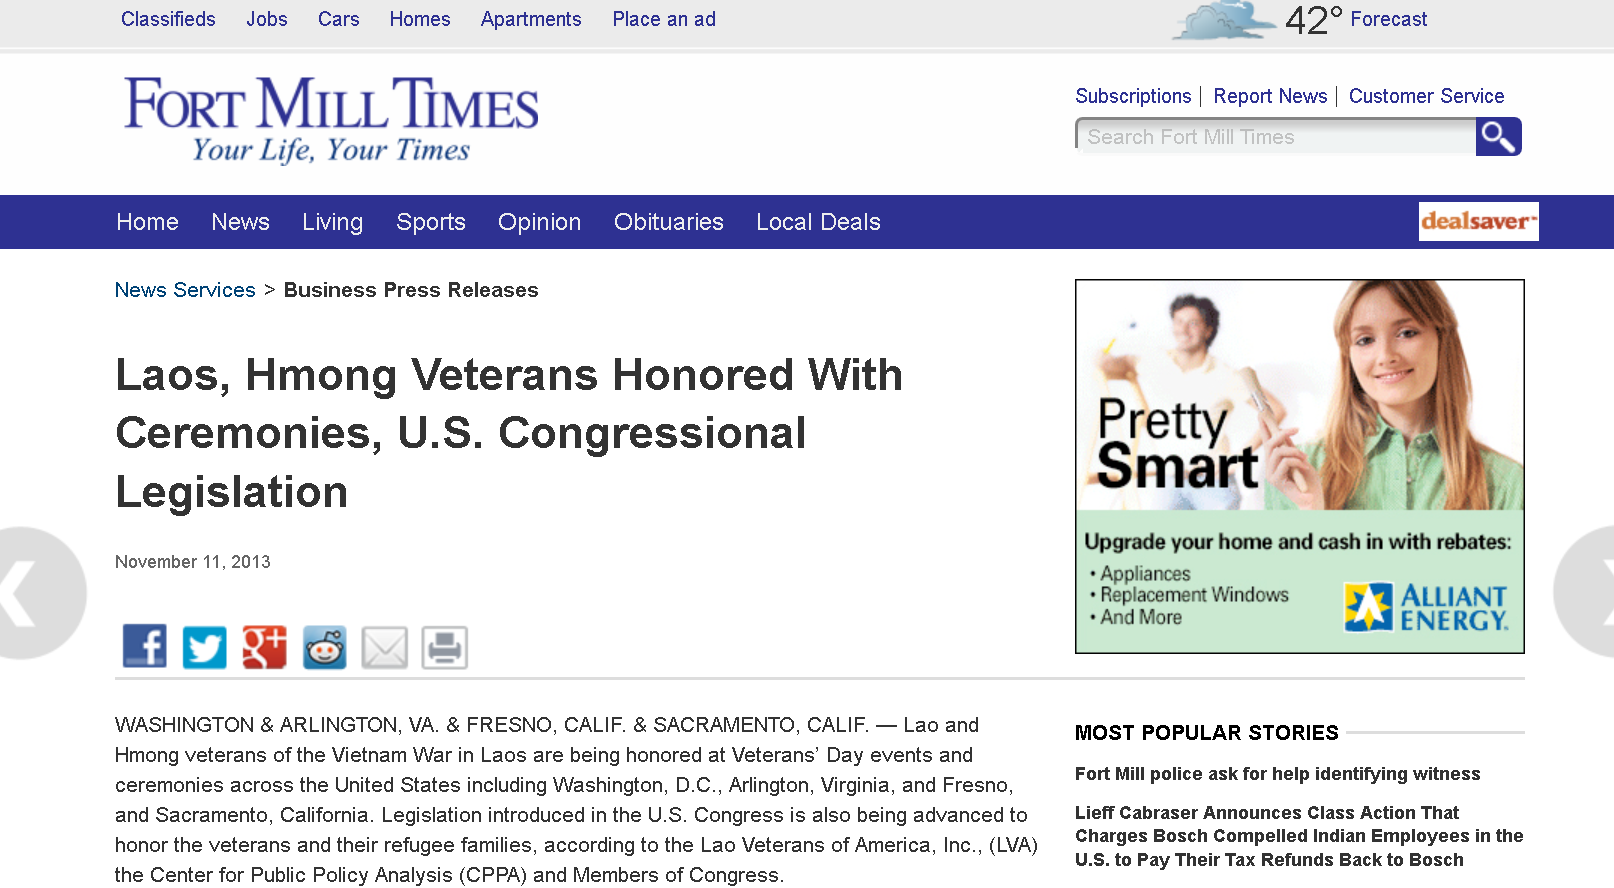 Laos, Hmong Veterans Honored With